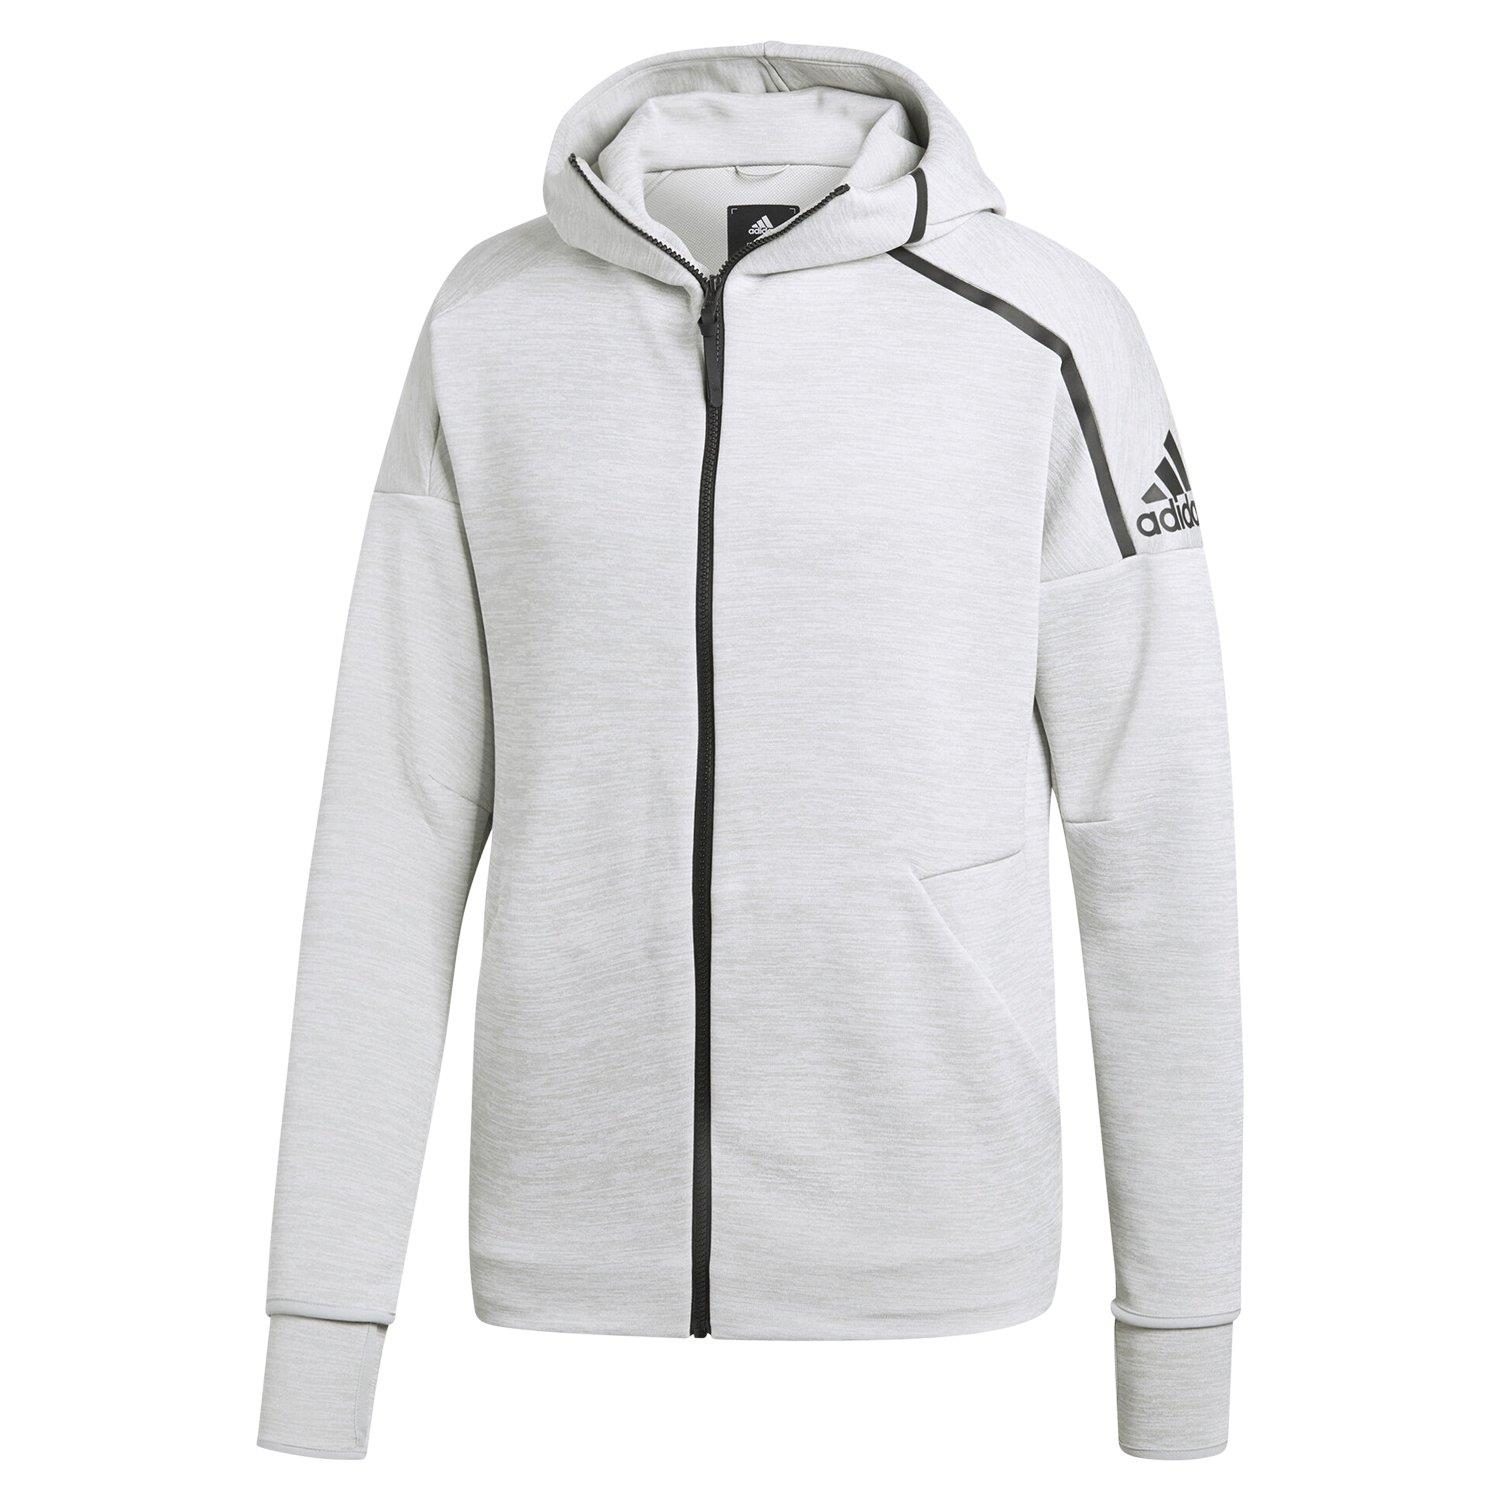 Details about adidas ZNE FAST RELEASE HOODIE FULL ZIP COMFY GYM ACTIVE CLIMALITE GREY MEN'S